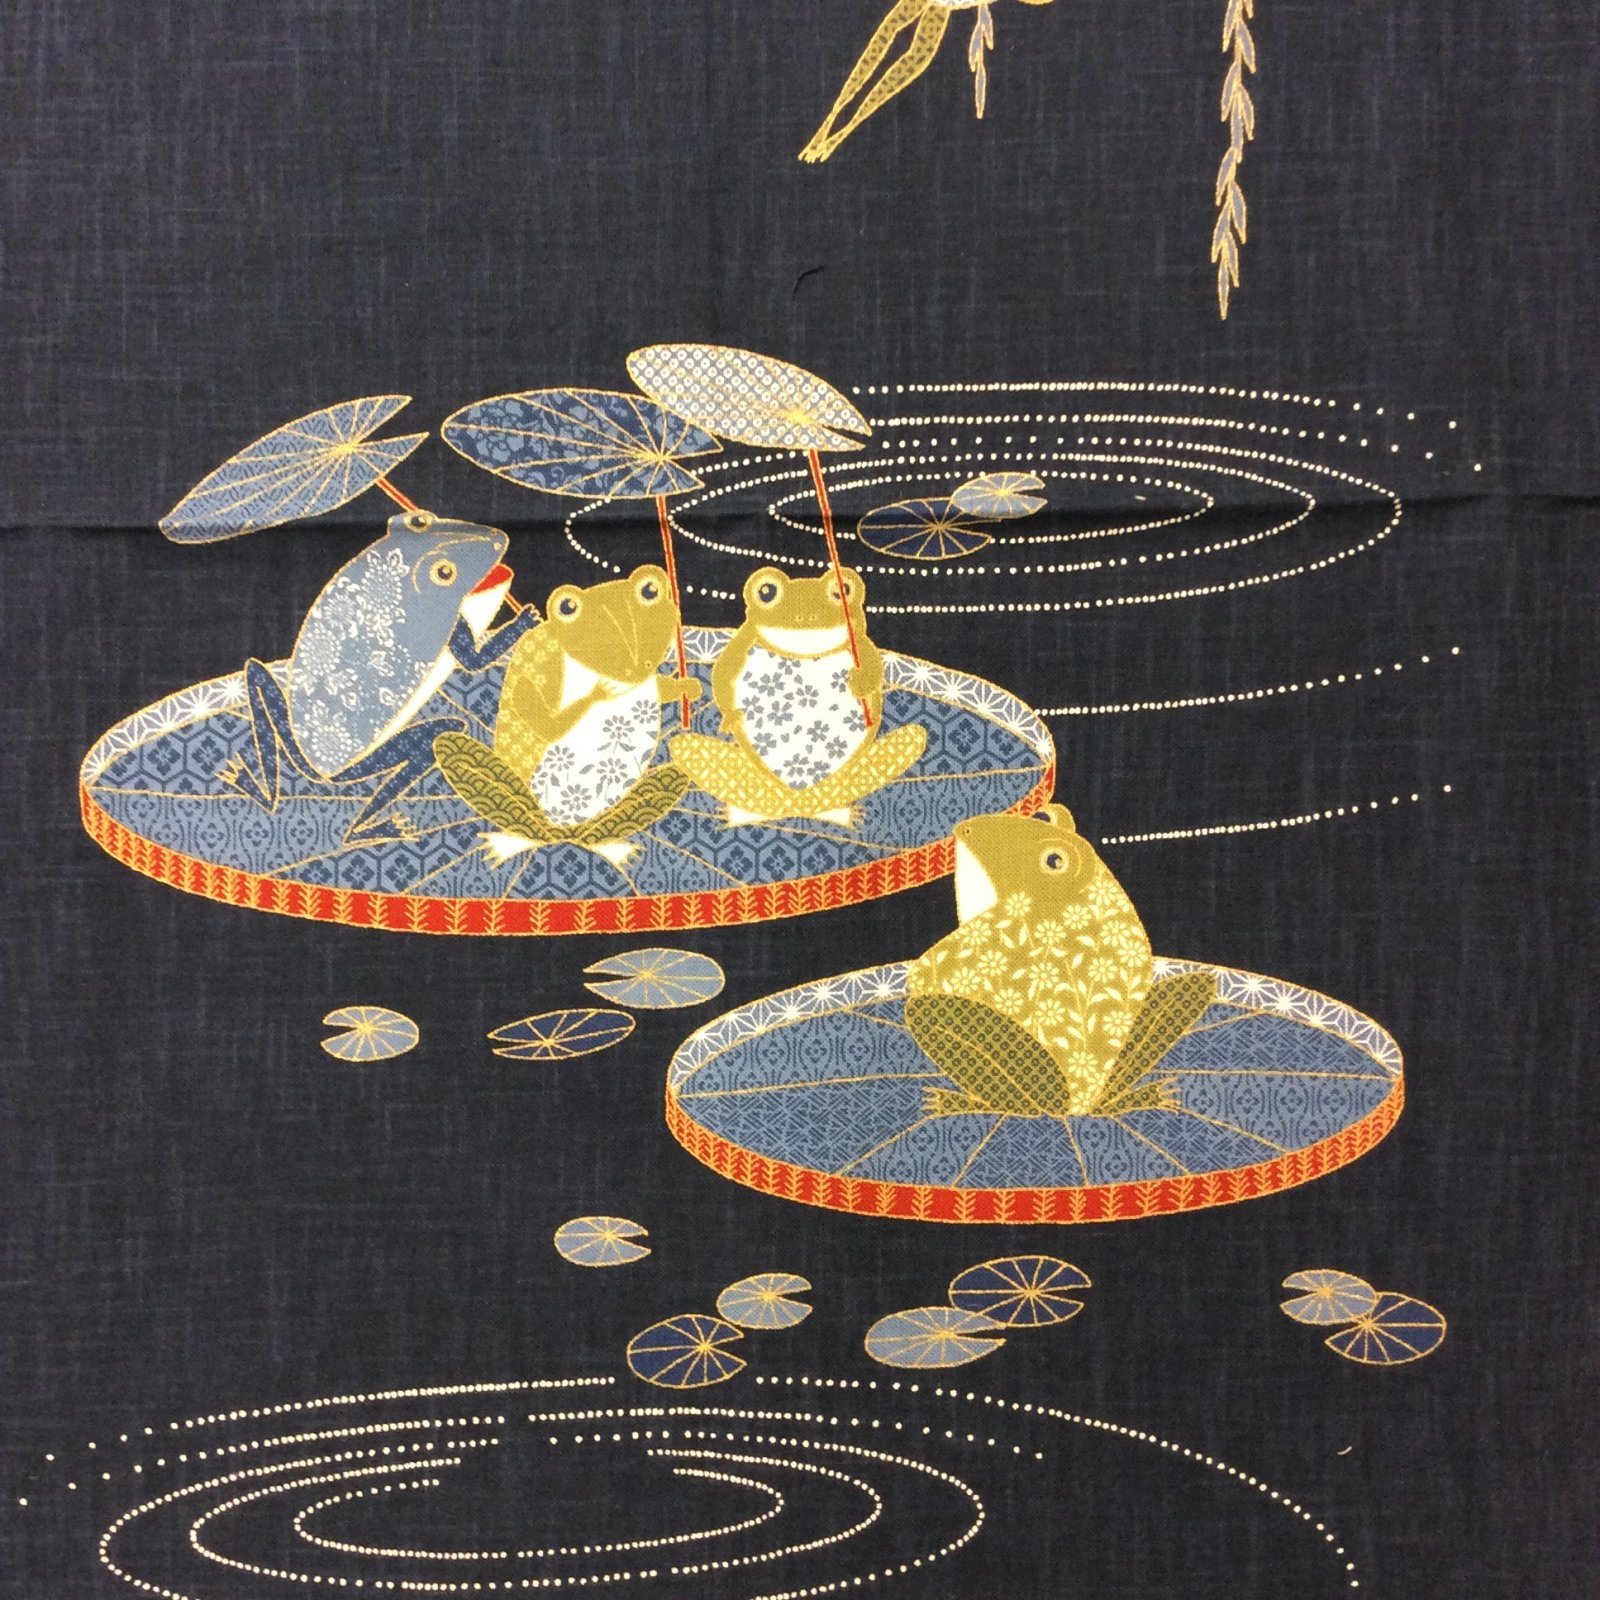 EK37 Frogs Pond Lilypads Navy Blue Weeping Willow Canvas Cotton Fabric Panel